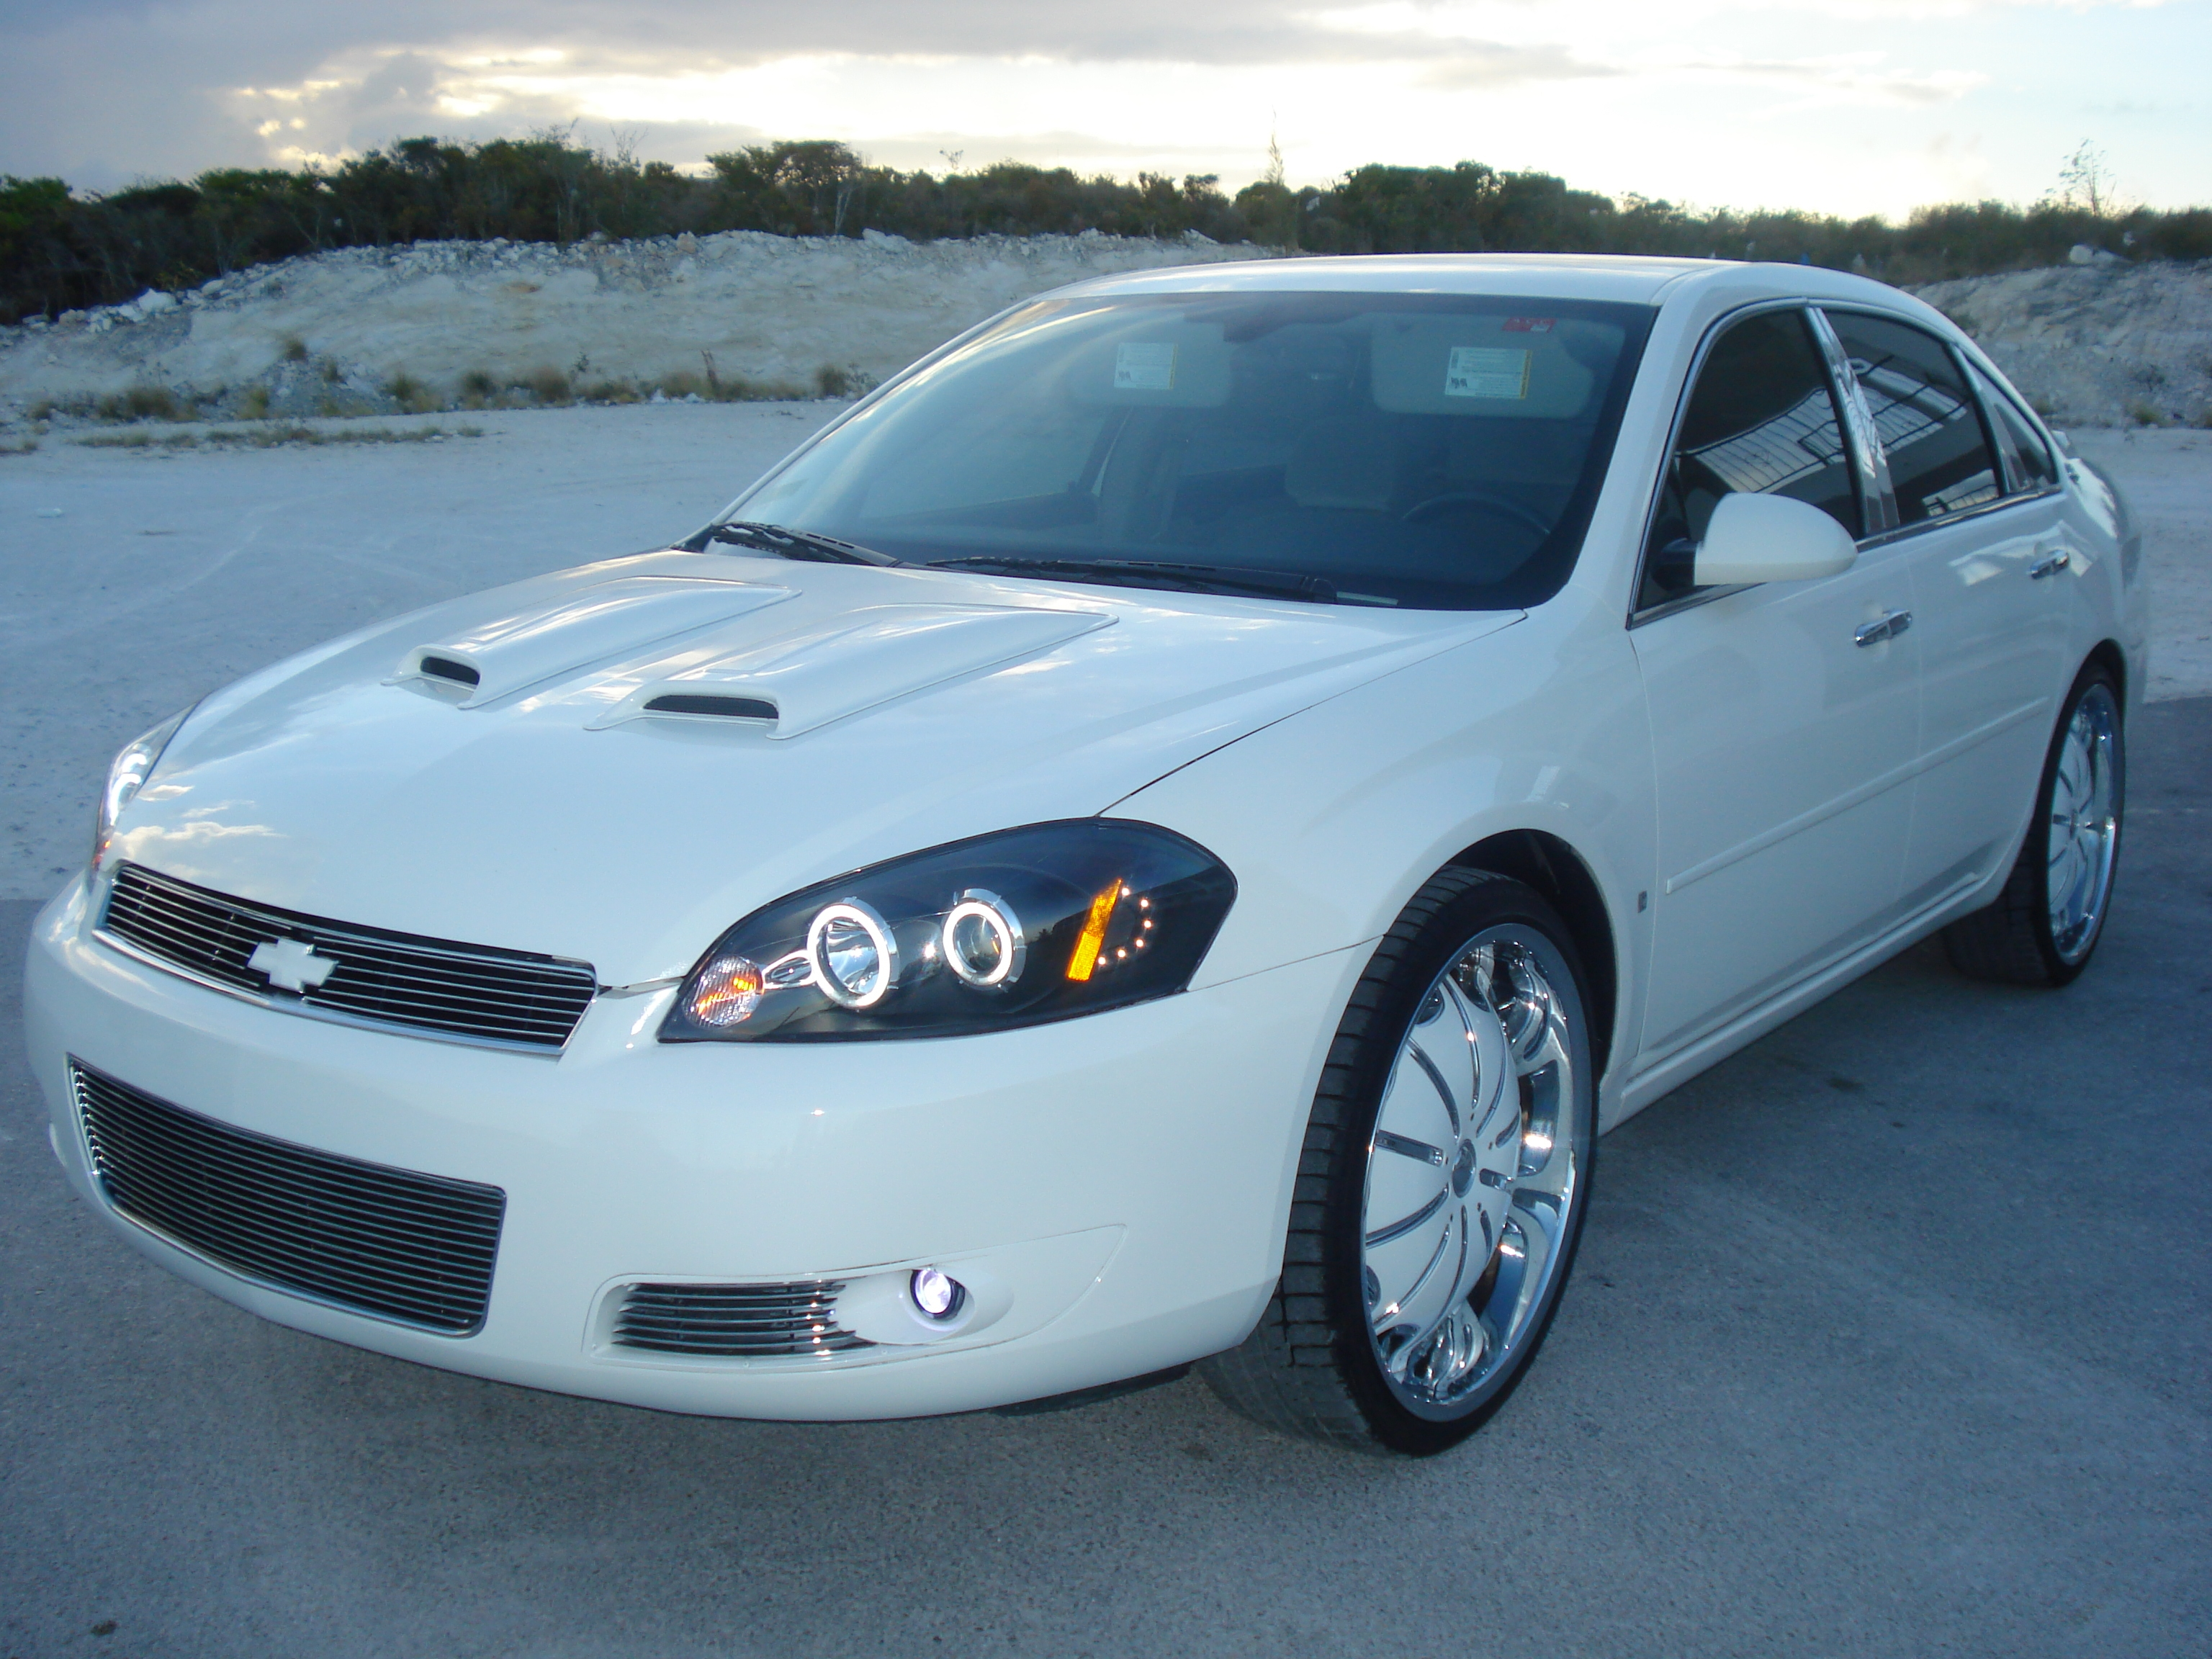 Amazoncom 2002 Chevrolet Monte Carlo Reviews Images